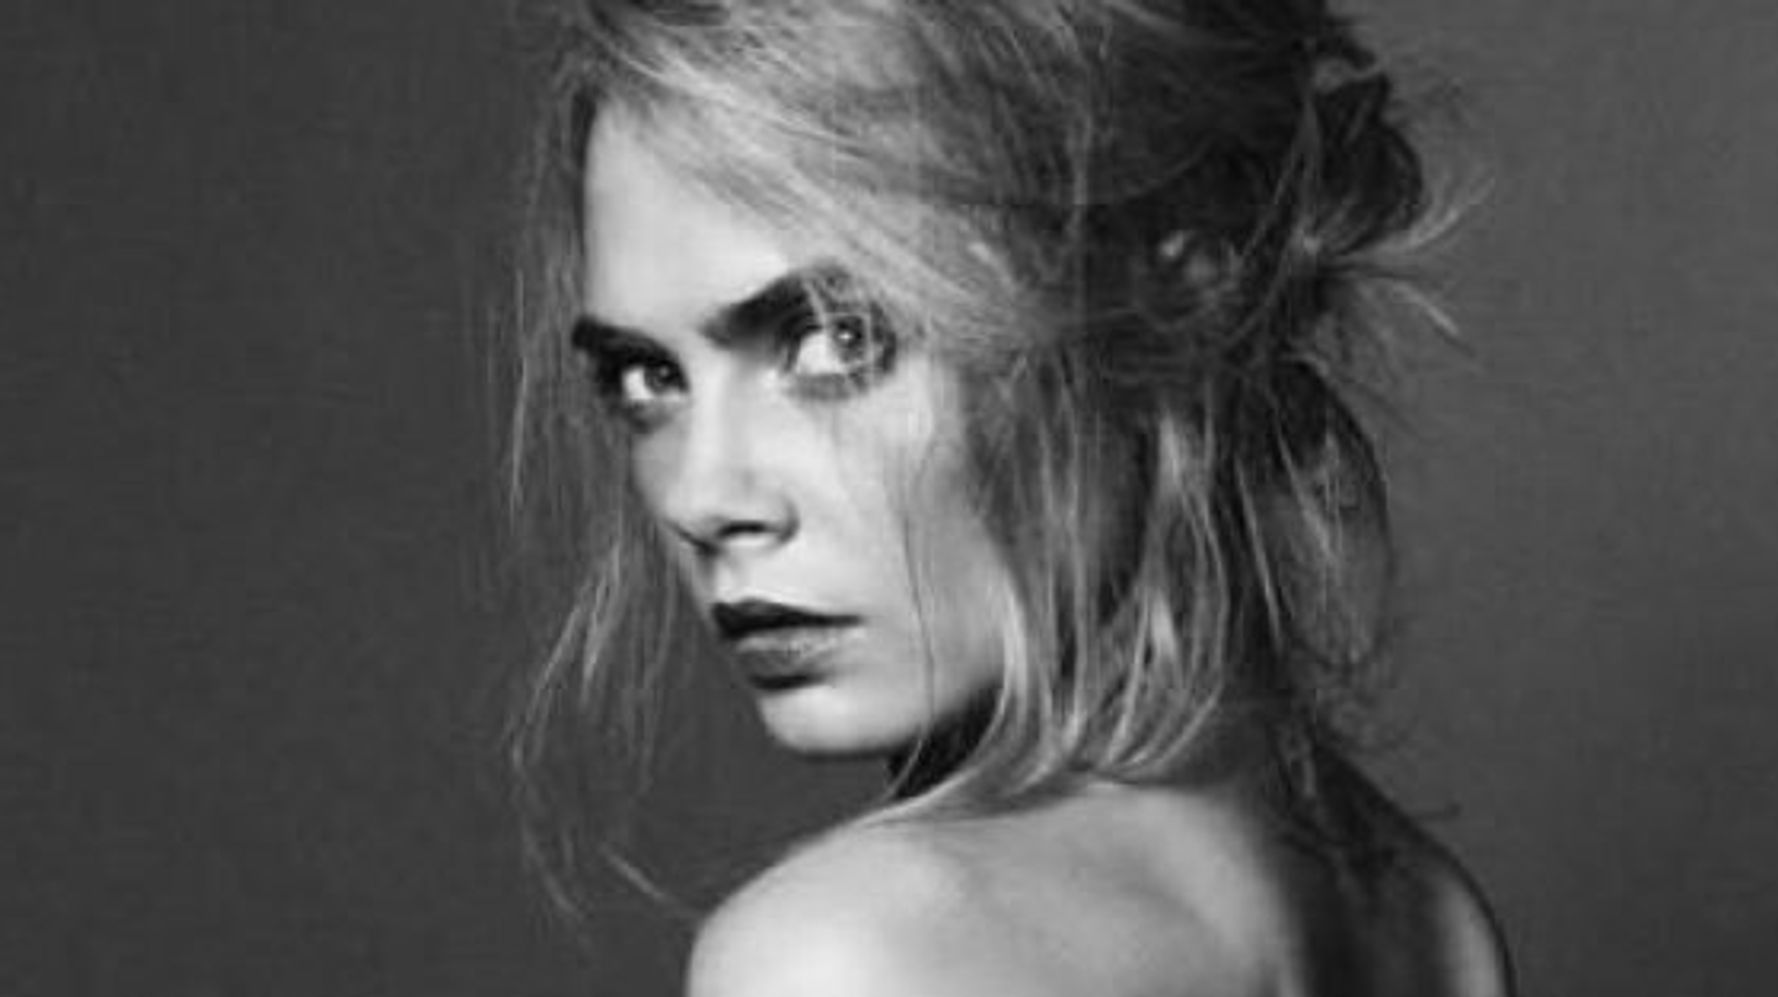 Cara Delevingne Poses Nude On The Cover Of Esquire U.K